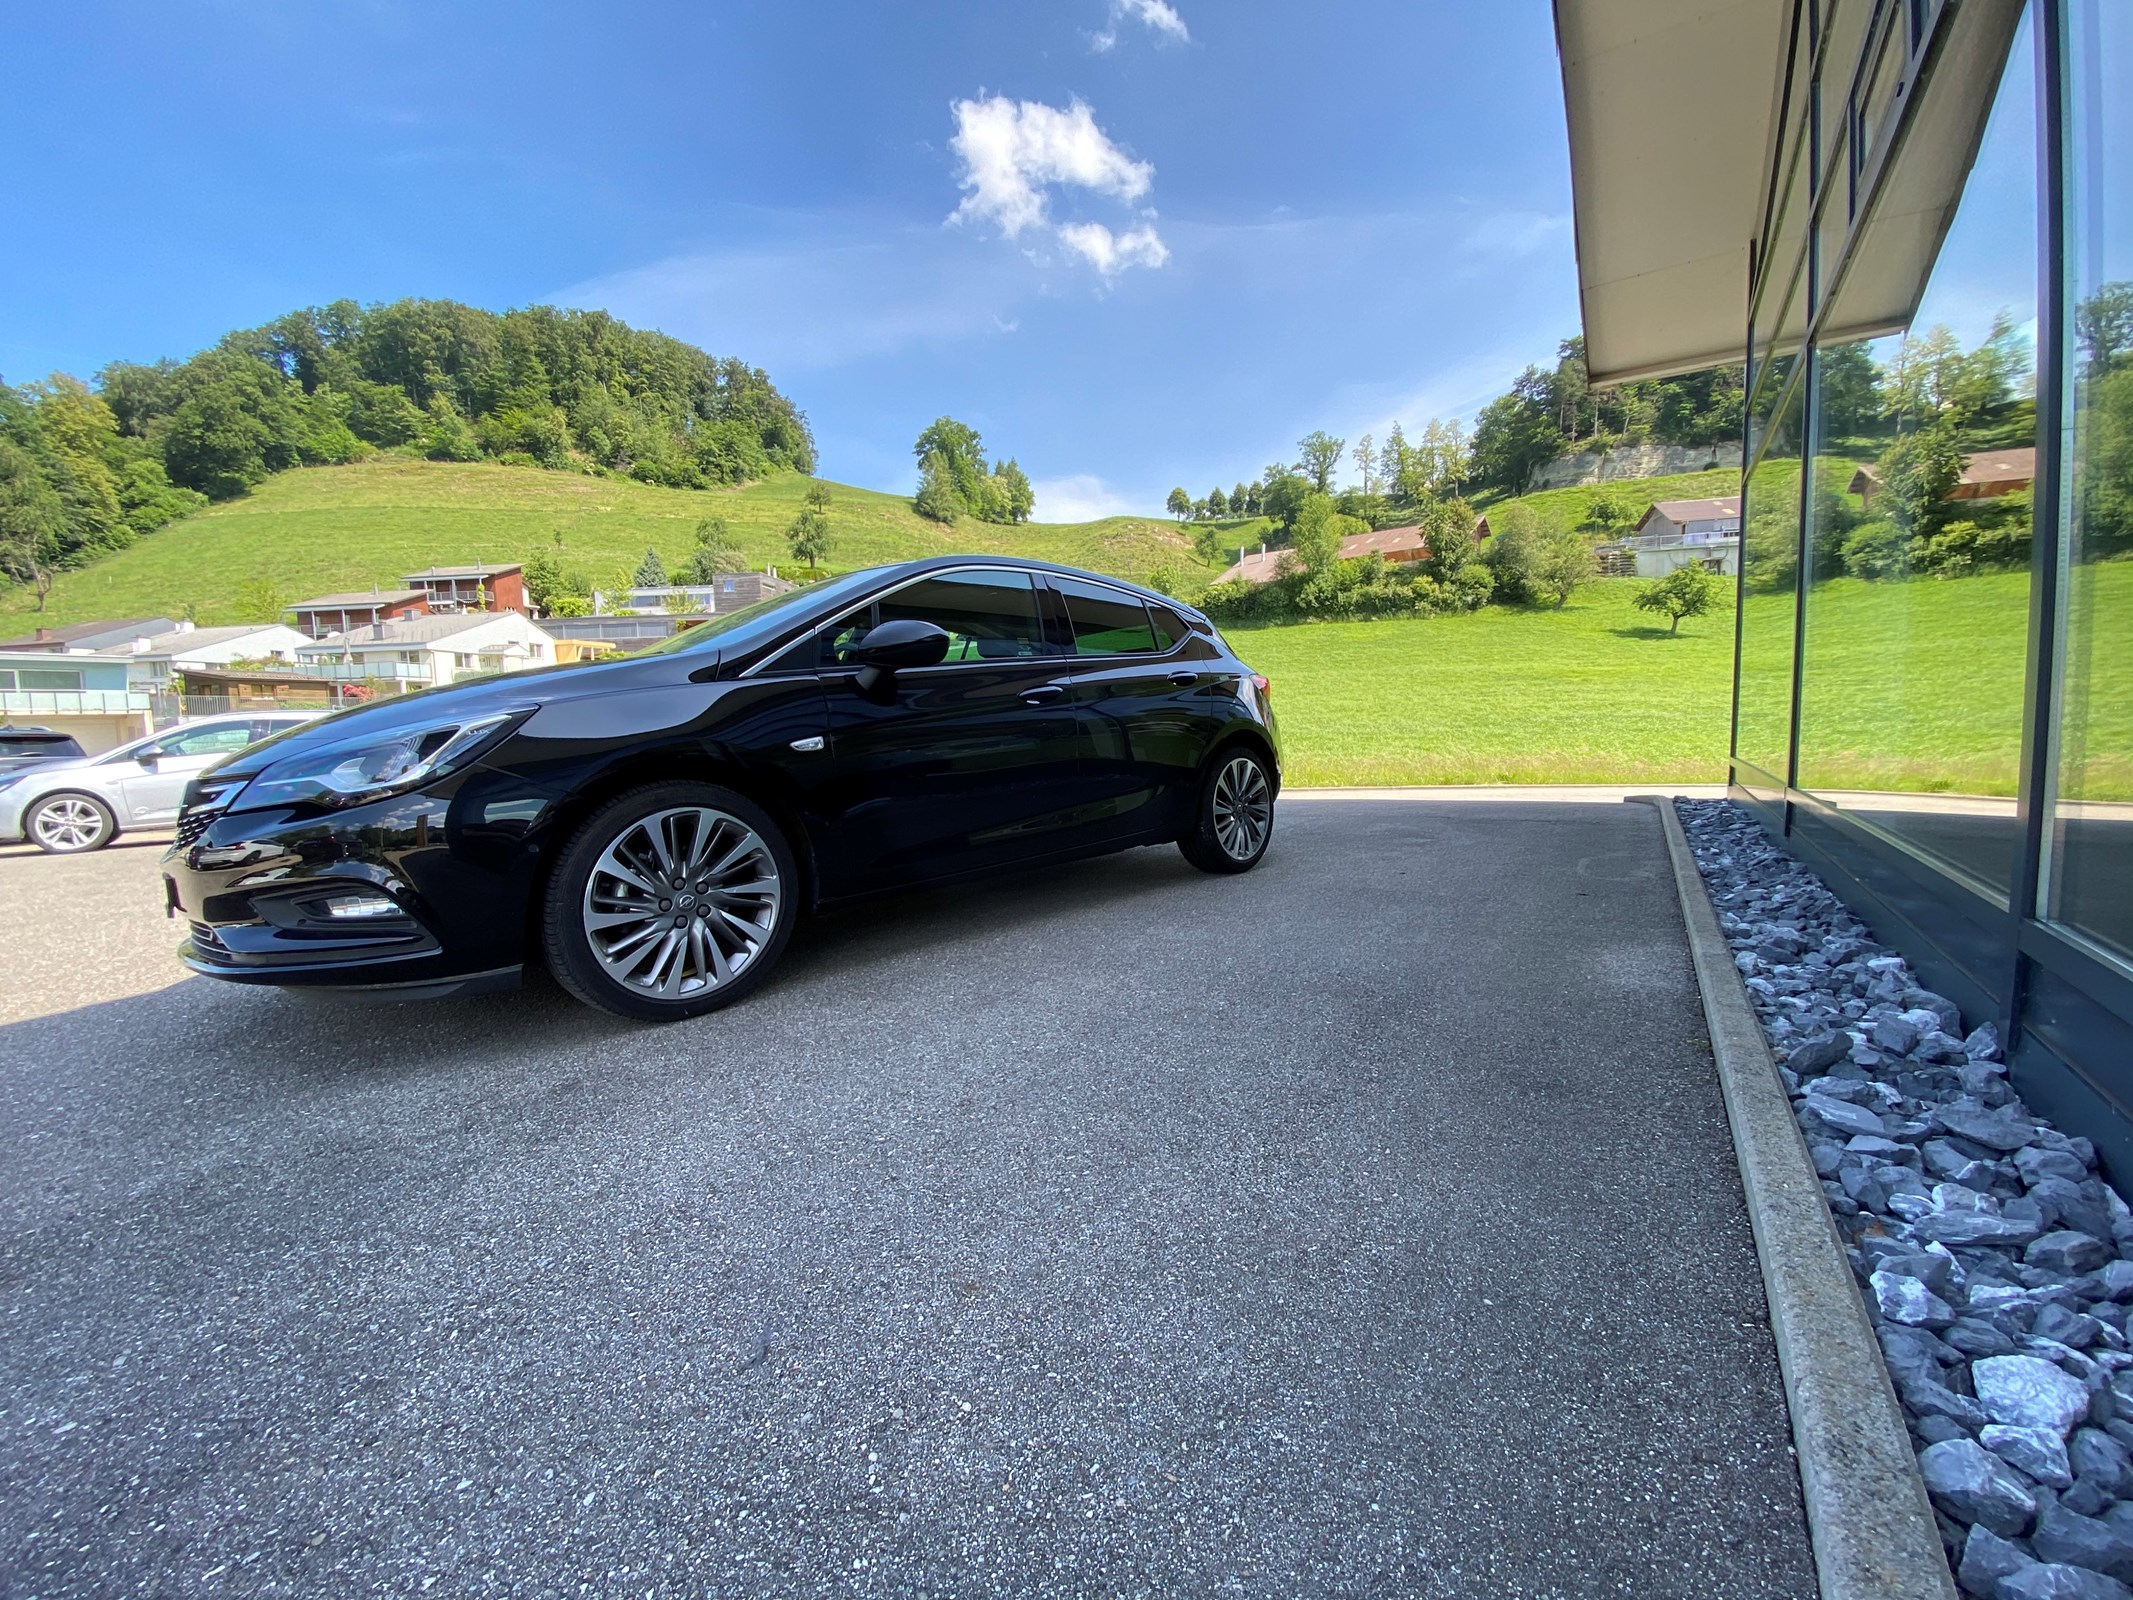 OPEL Astra 1.6 ecoF Excellence (Limousine)